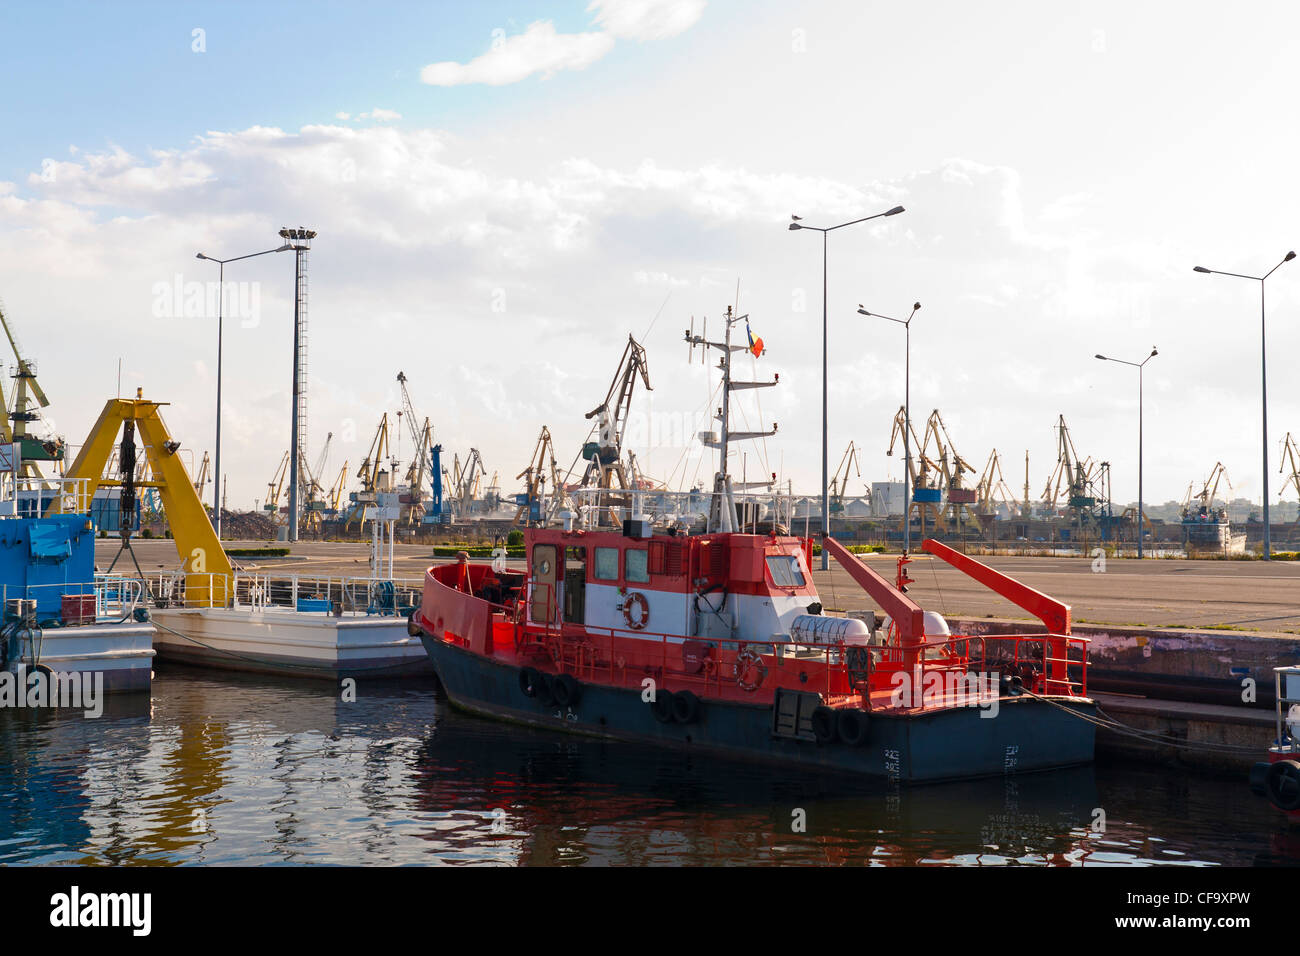 Anchored red towboat in port. - Stock Image